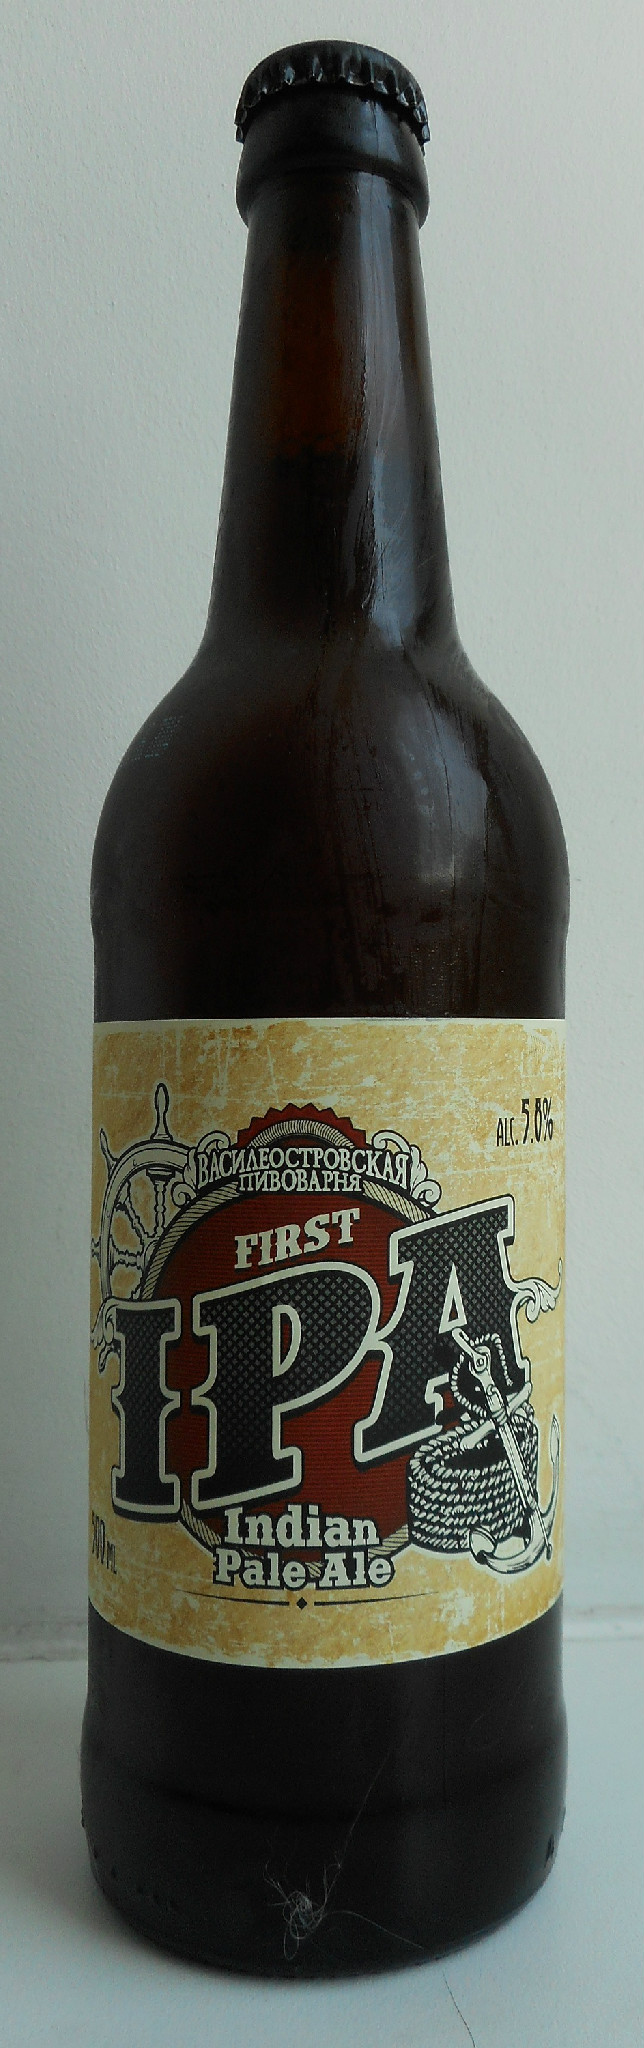 first-ipa